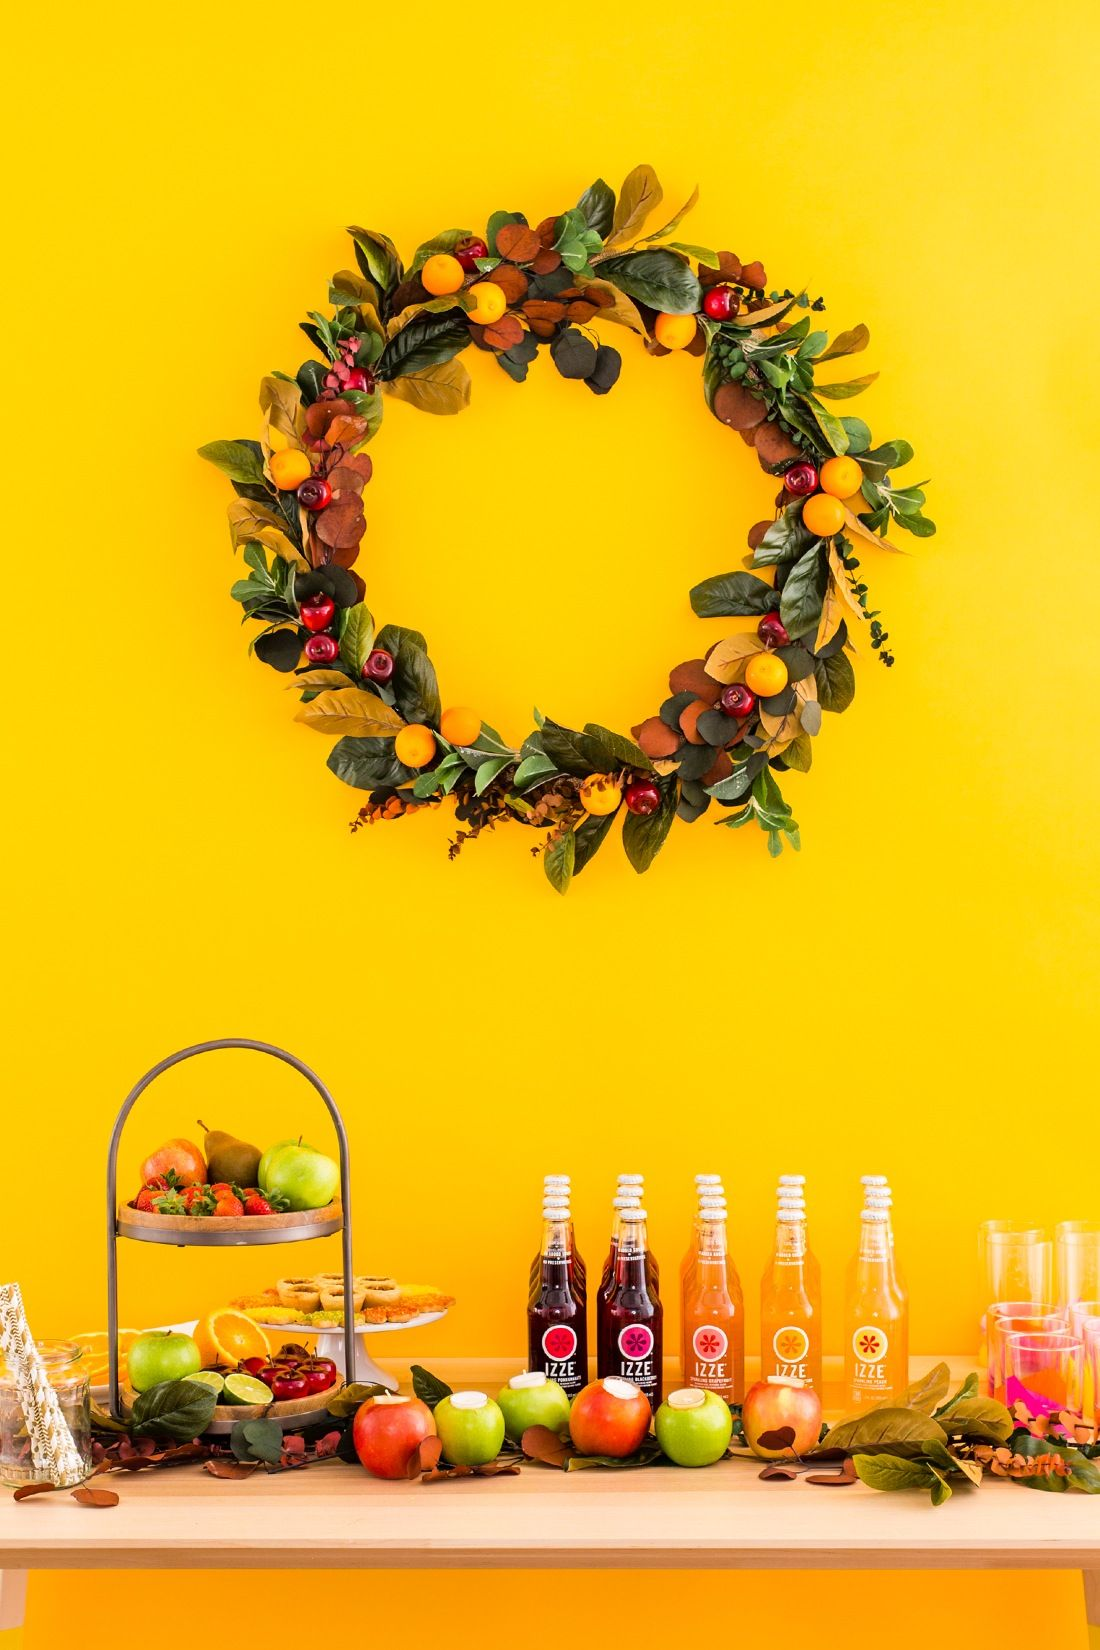 Amp up your Friendsgiving dinner plans with a step-by-step DIY for an Autumnal Wreath made with clementines, apples + autumnal branches. #partner